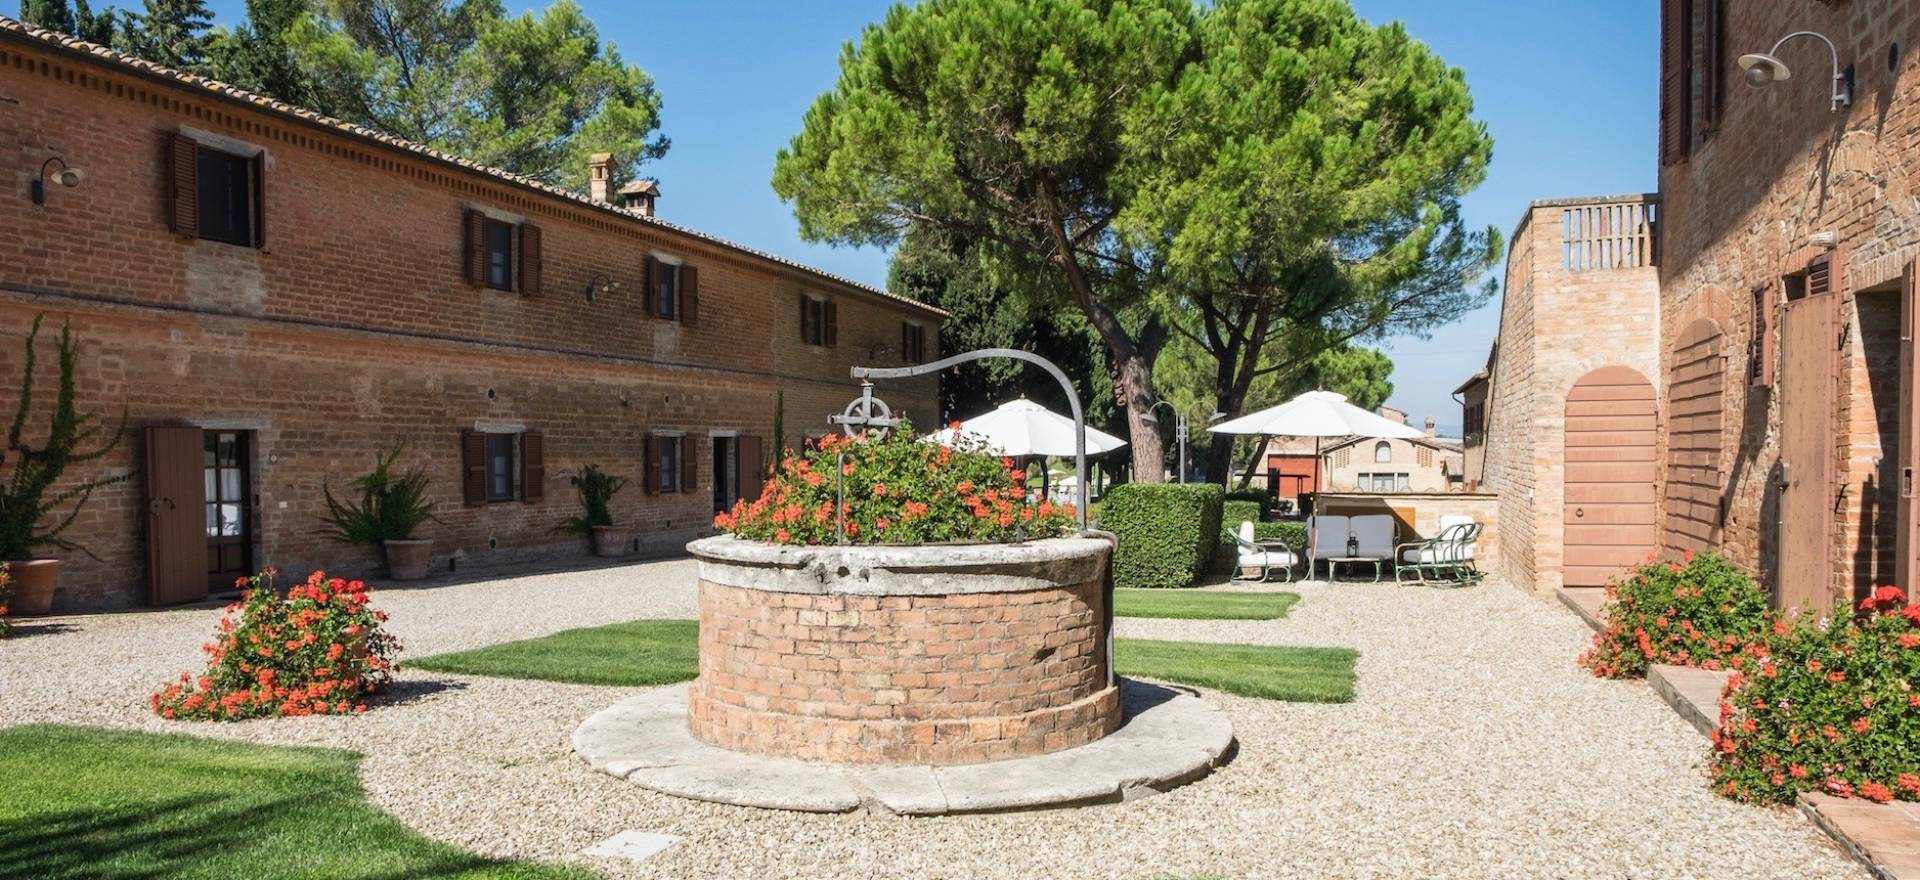 Agriturismo Tuscany Agriturismo in Tuscany with great views